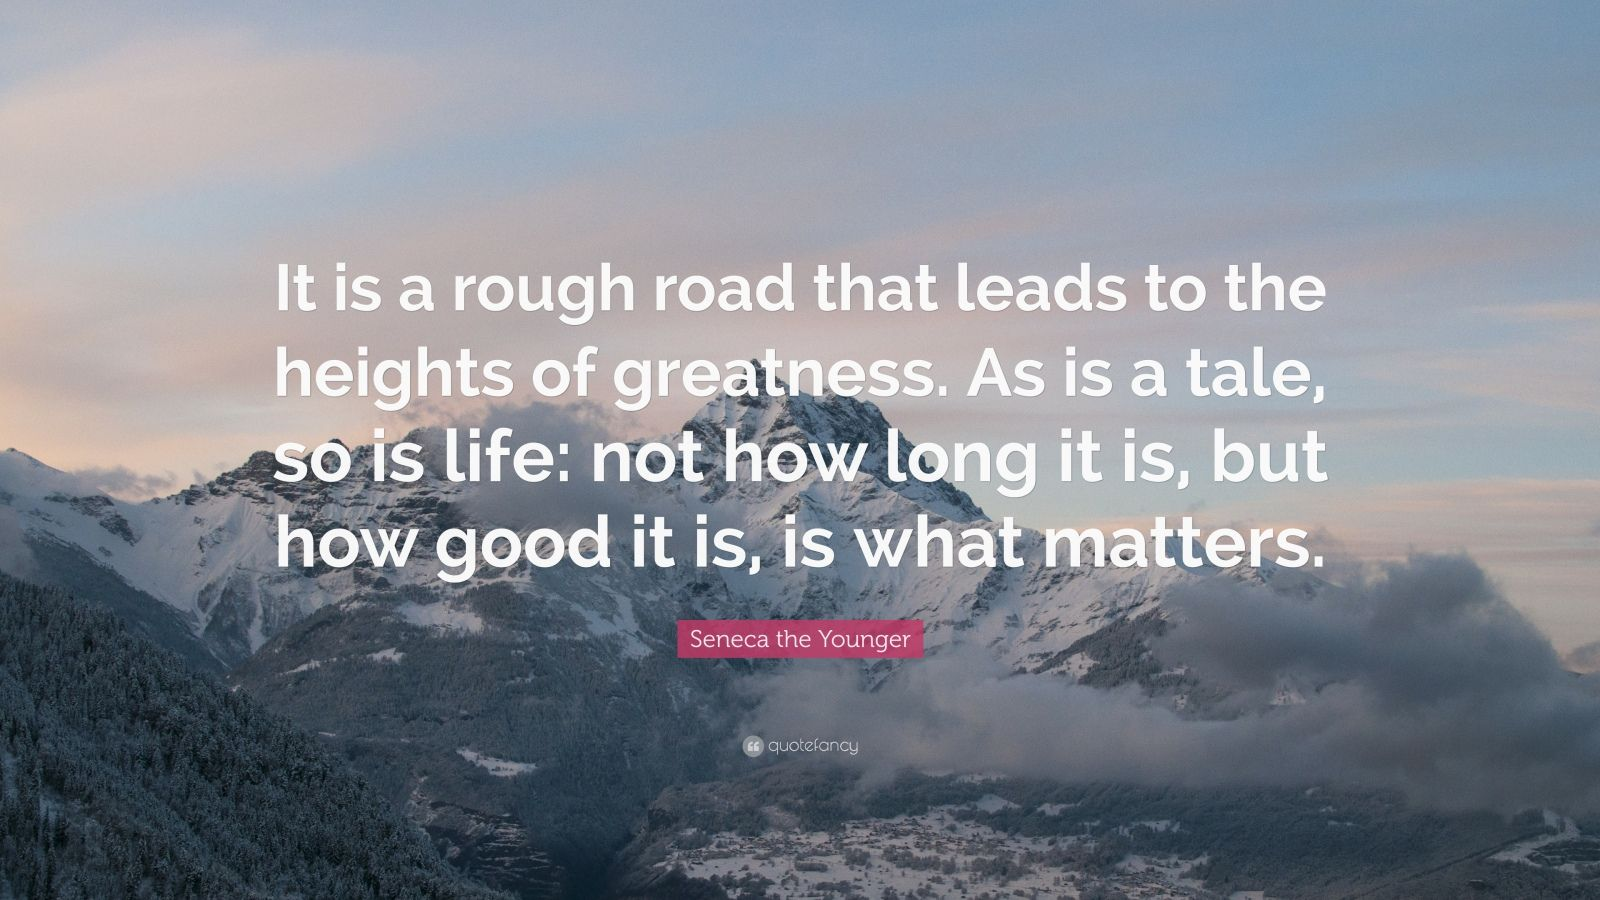 """Seneca the Younger Quote: """"It is a rough road that leads to the heights of greatness. As is a tale, so is life: not how long it is, but how good it is, is what matters."""""""